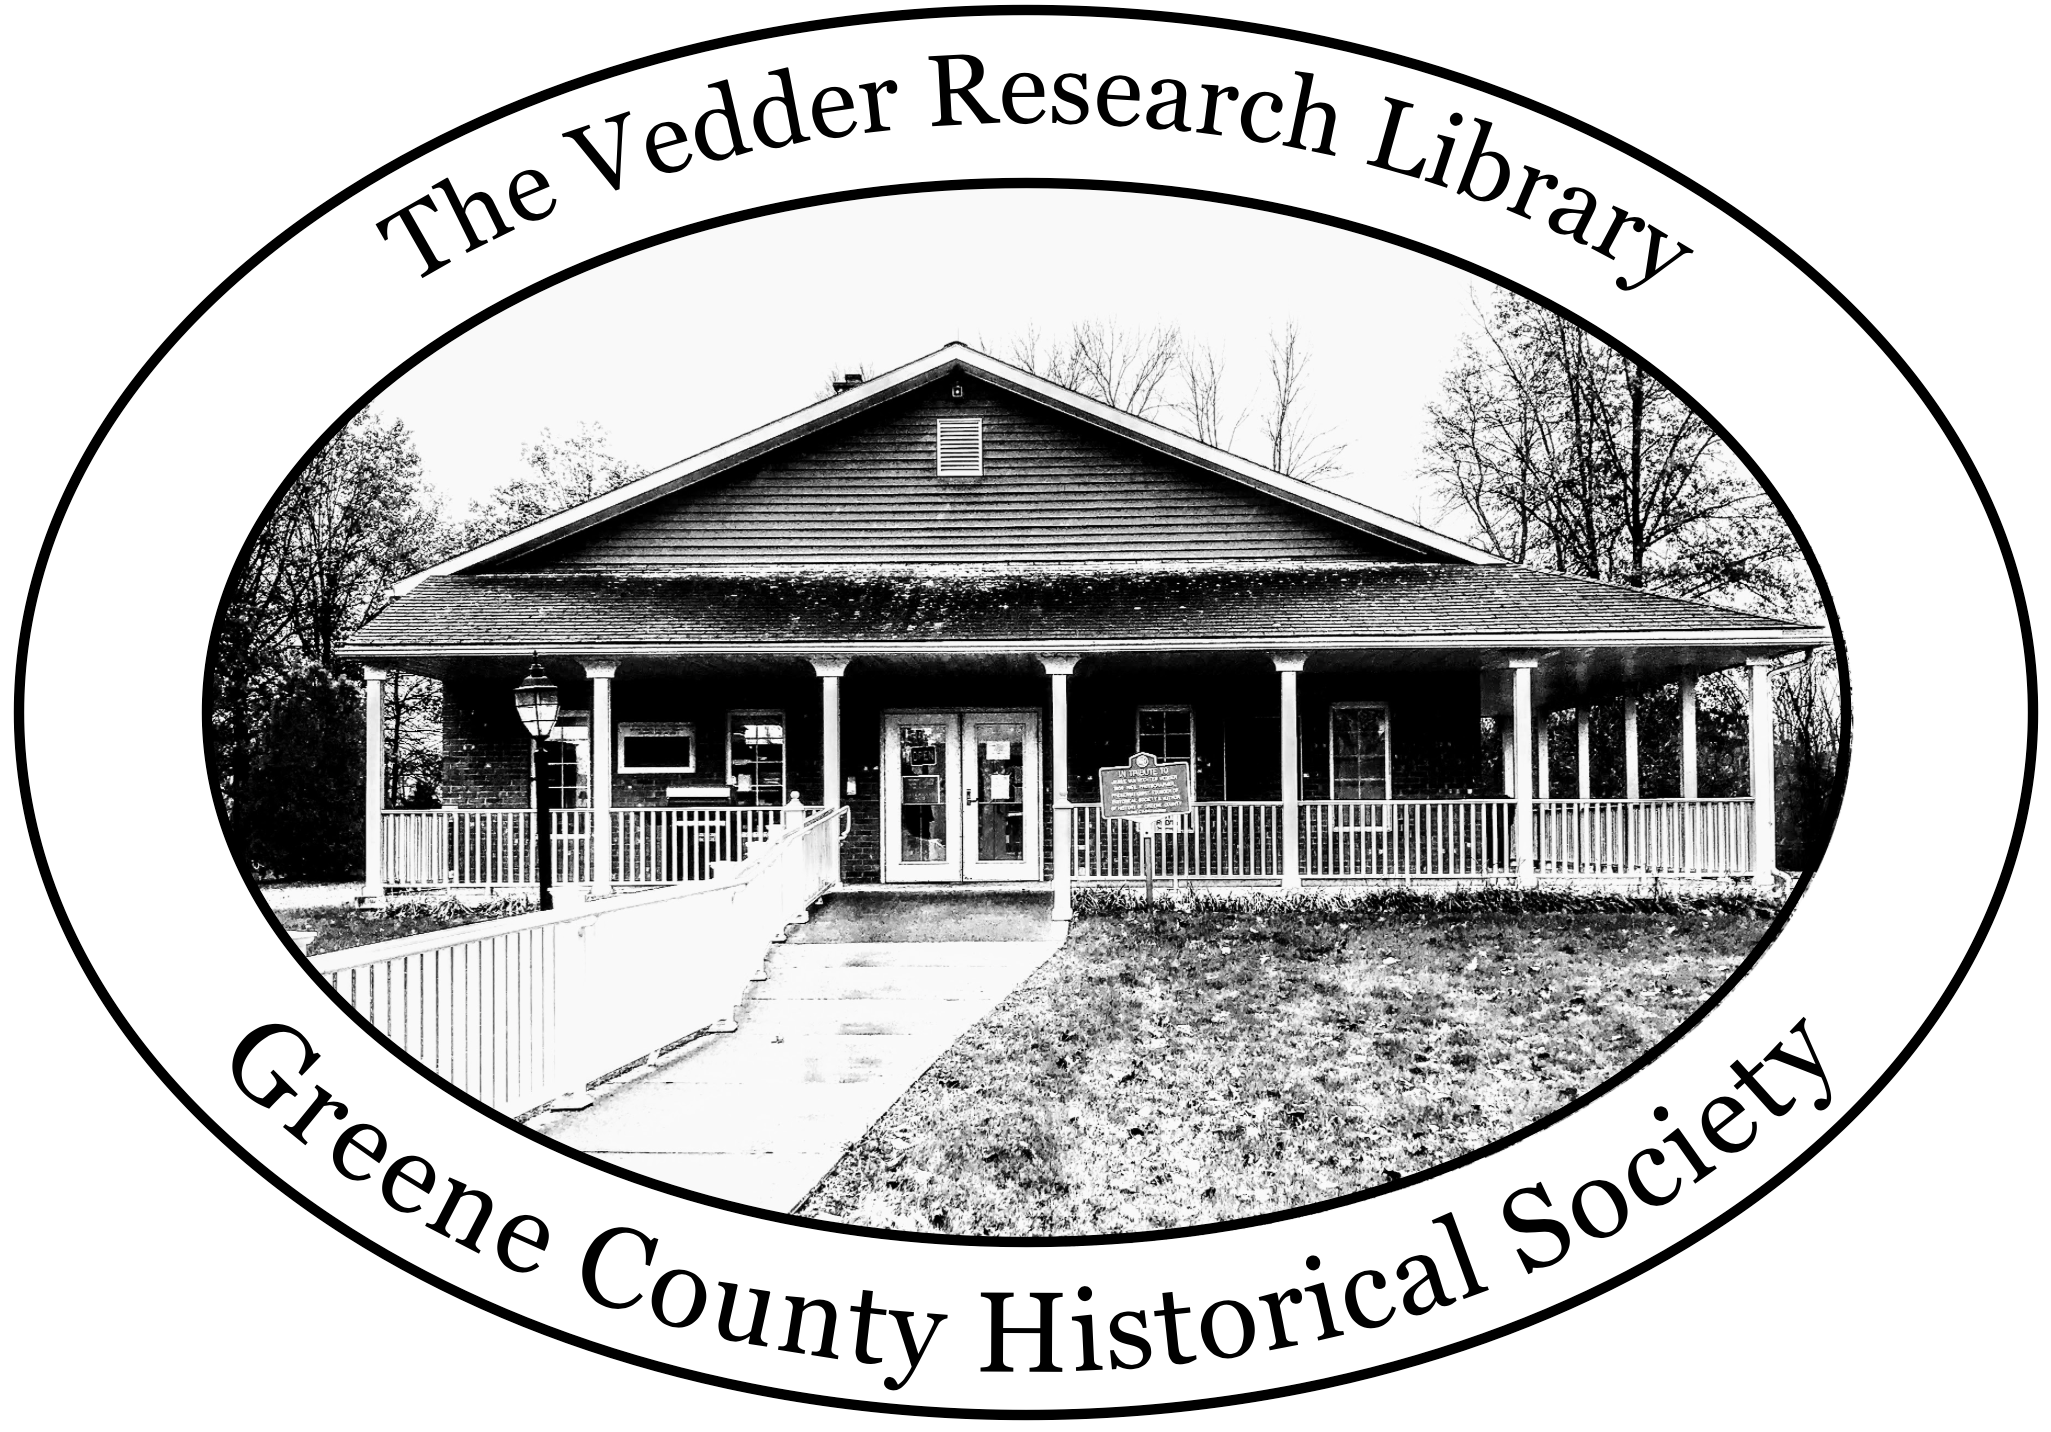 Image of the Vedder Research Library